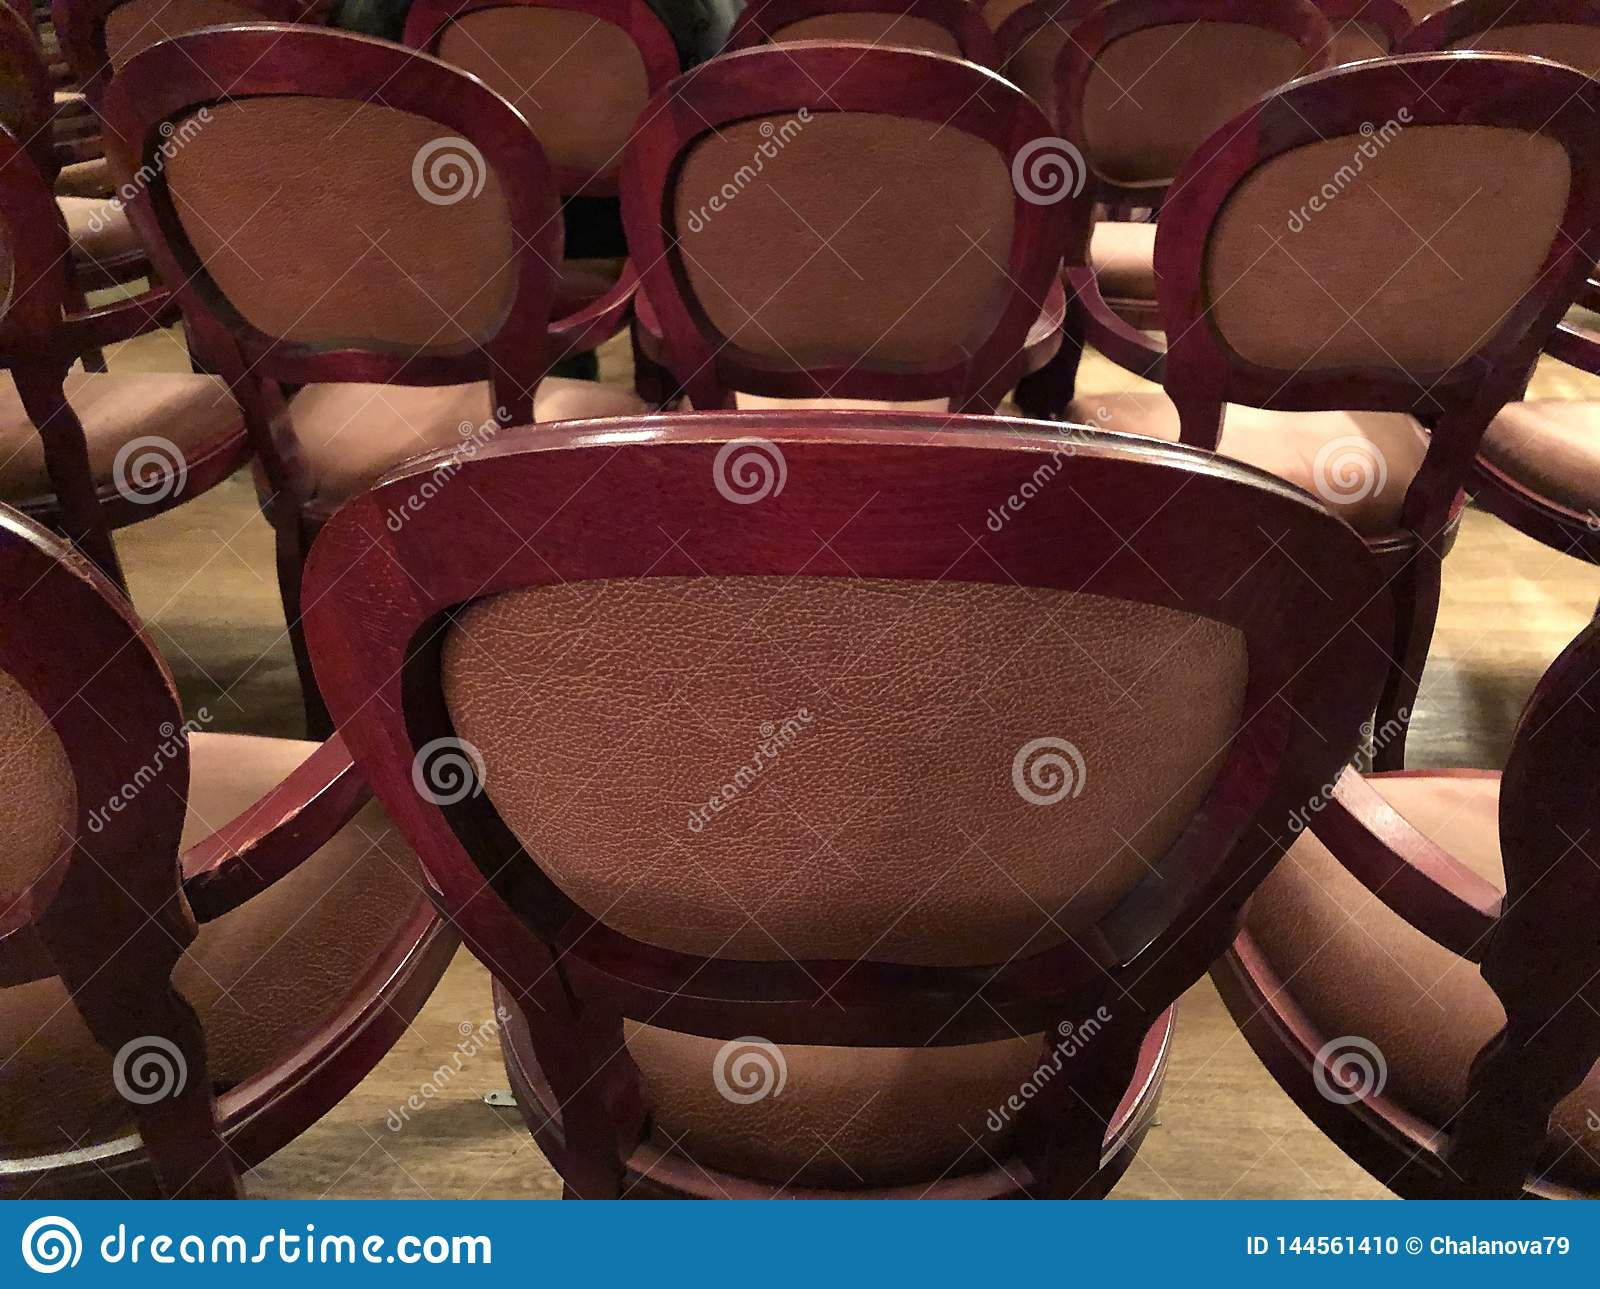 Wooden retro seats for spectators in the theater or cinema